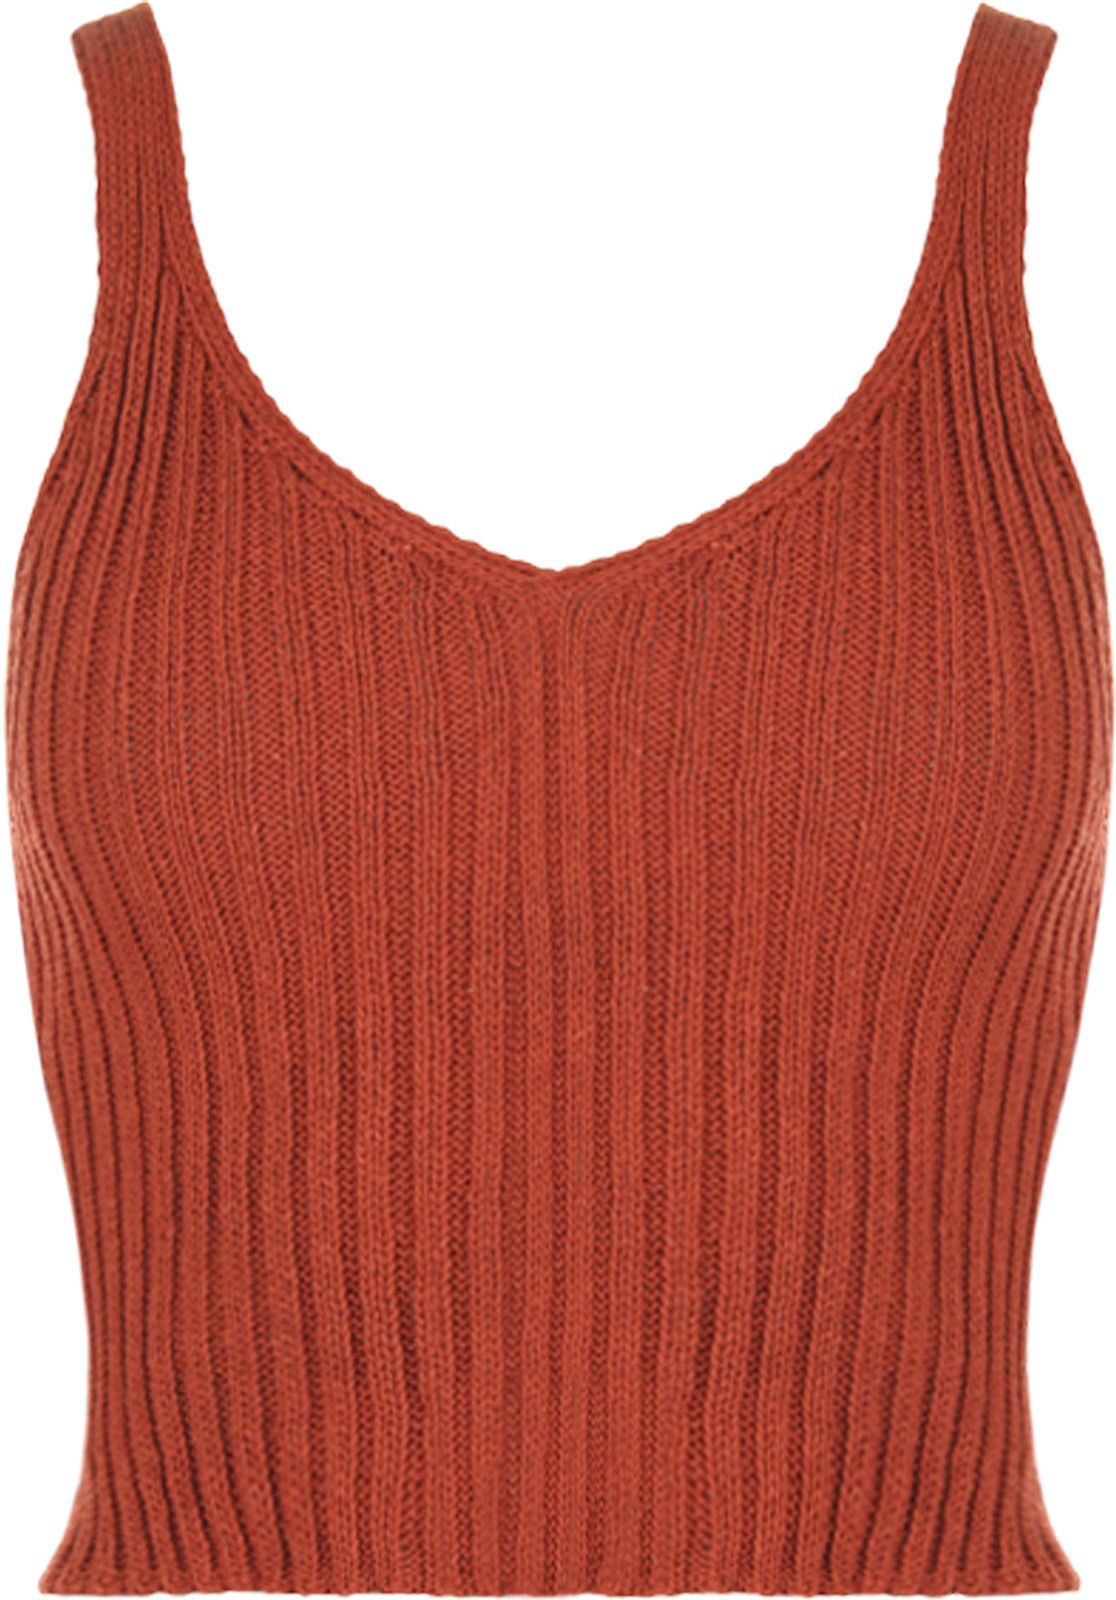 fd0045bc3d New Women Ladies V Neck Knitted Ribbed Plain Bralet Crop Top Sleeveless  Vest Top